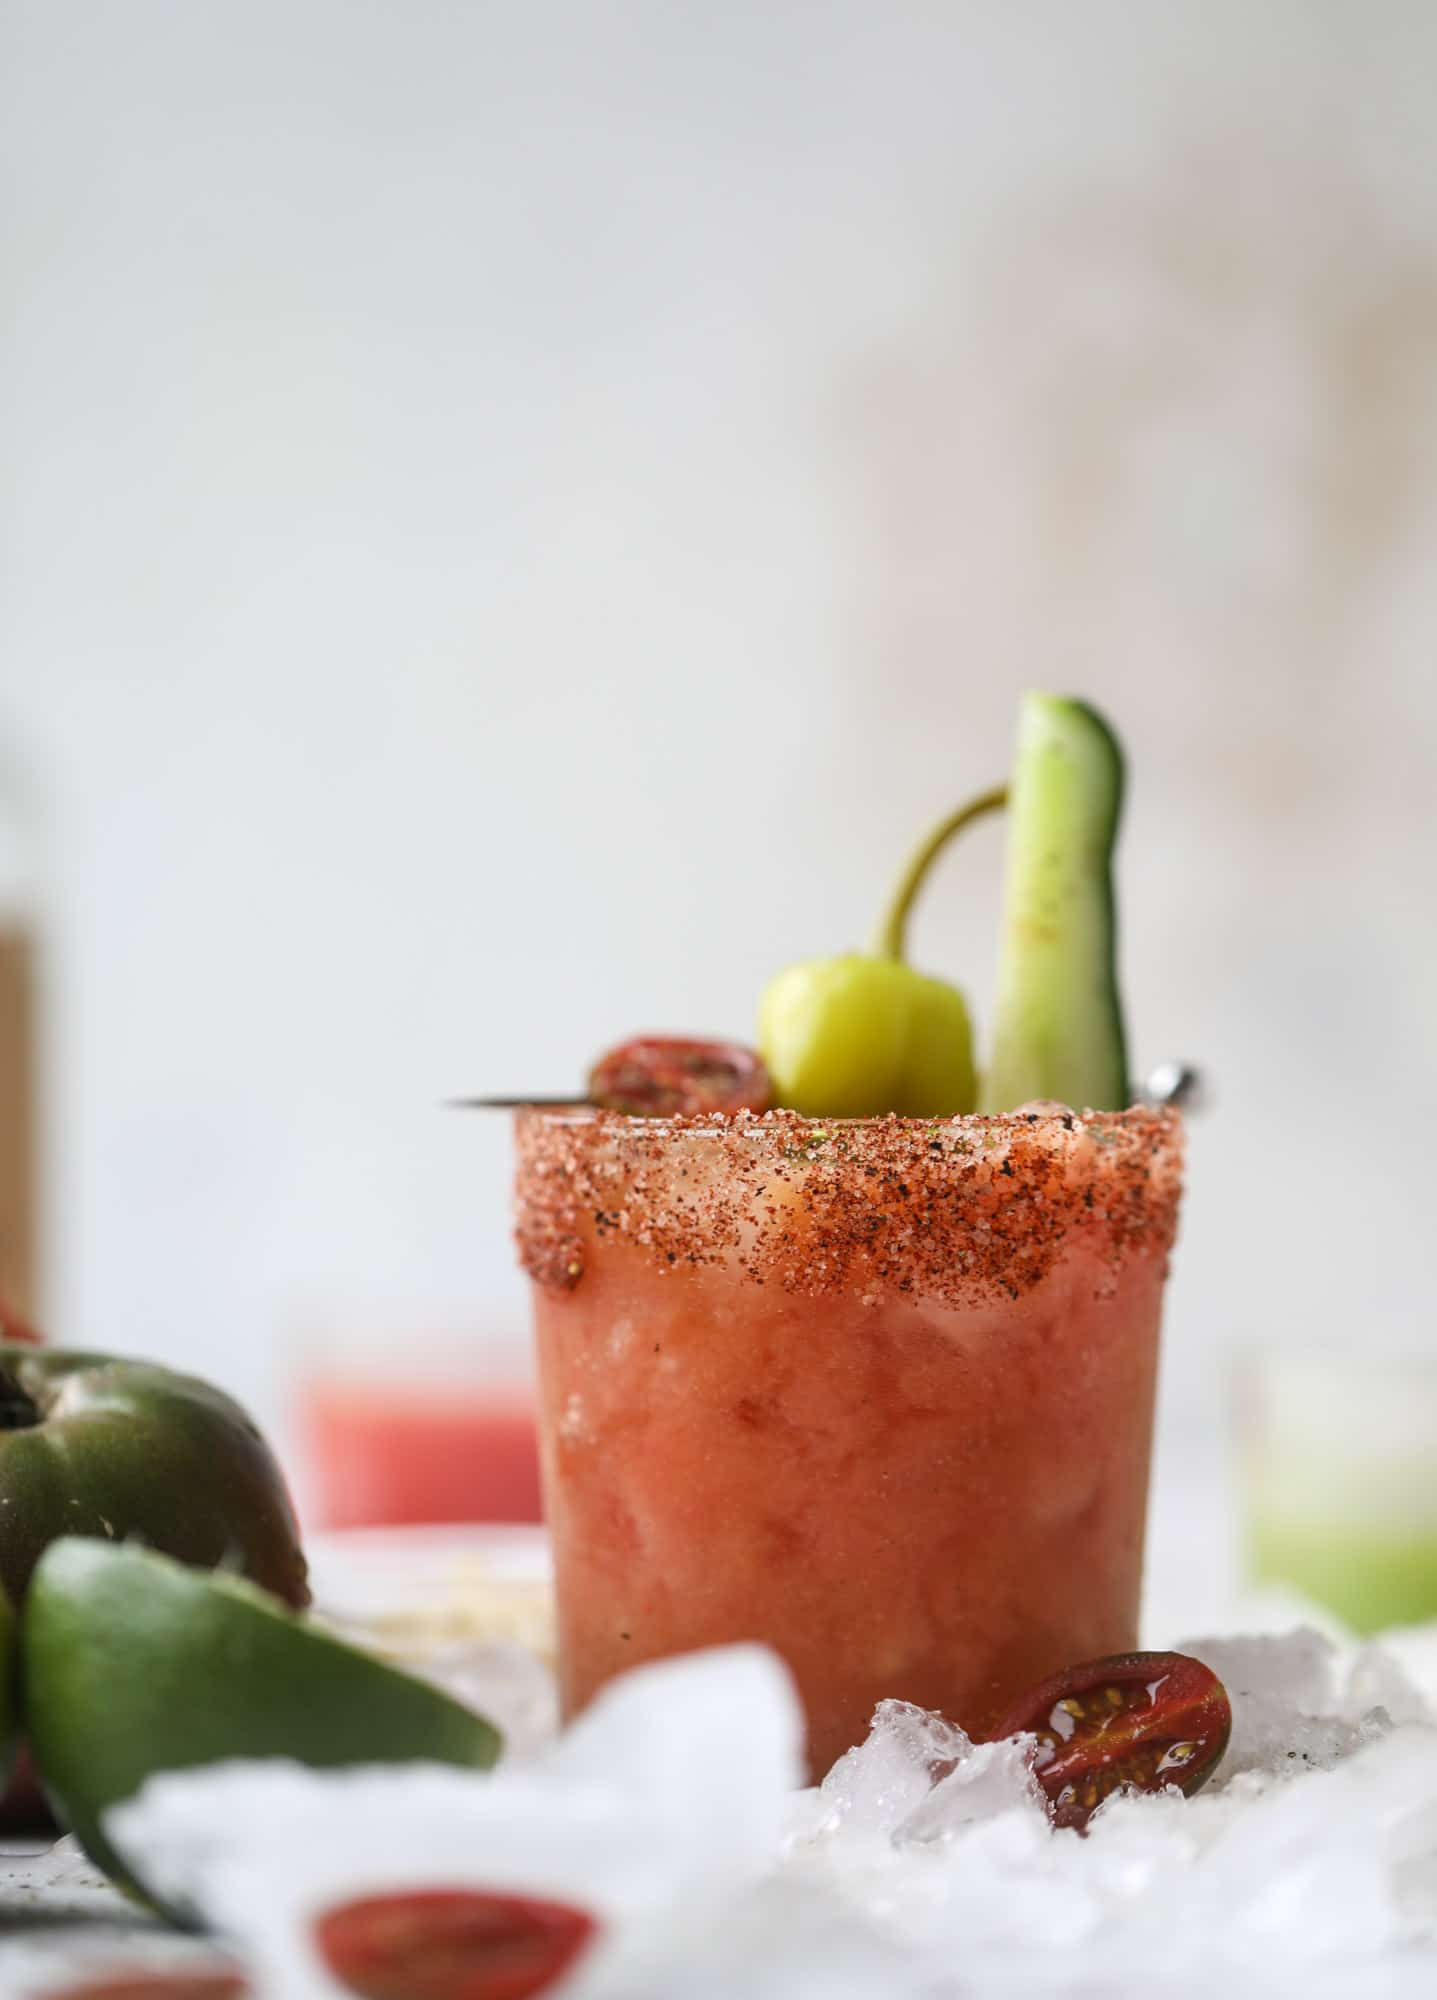 This bloody mary recipe is made with fresh heirloom tomatoes - the gems of summer! The colors swirl together to create a stunning drinking that is loaded with smoky, spicy flavor. Top with your favorite snacks foe the perfect brunch! I howsweeteats.com #bloody #mary #recipe #best #heirloom #tomatoes #cocktail